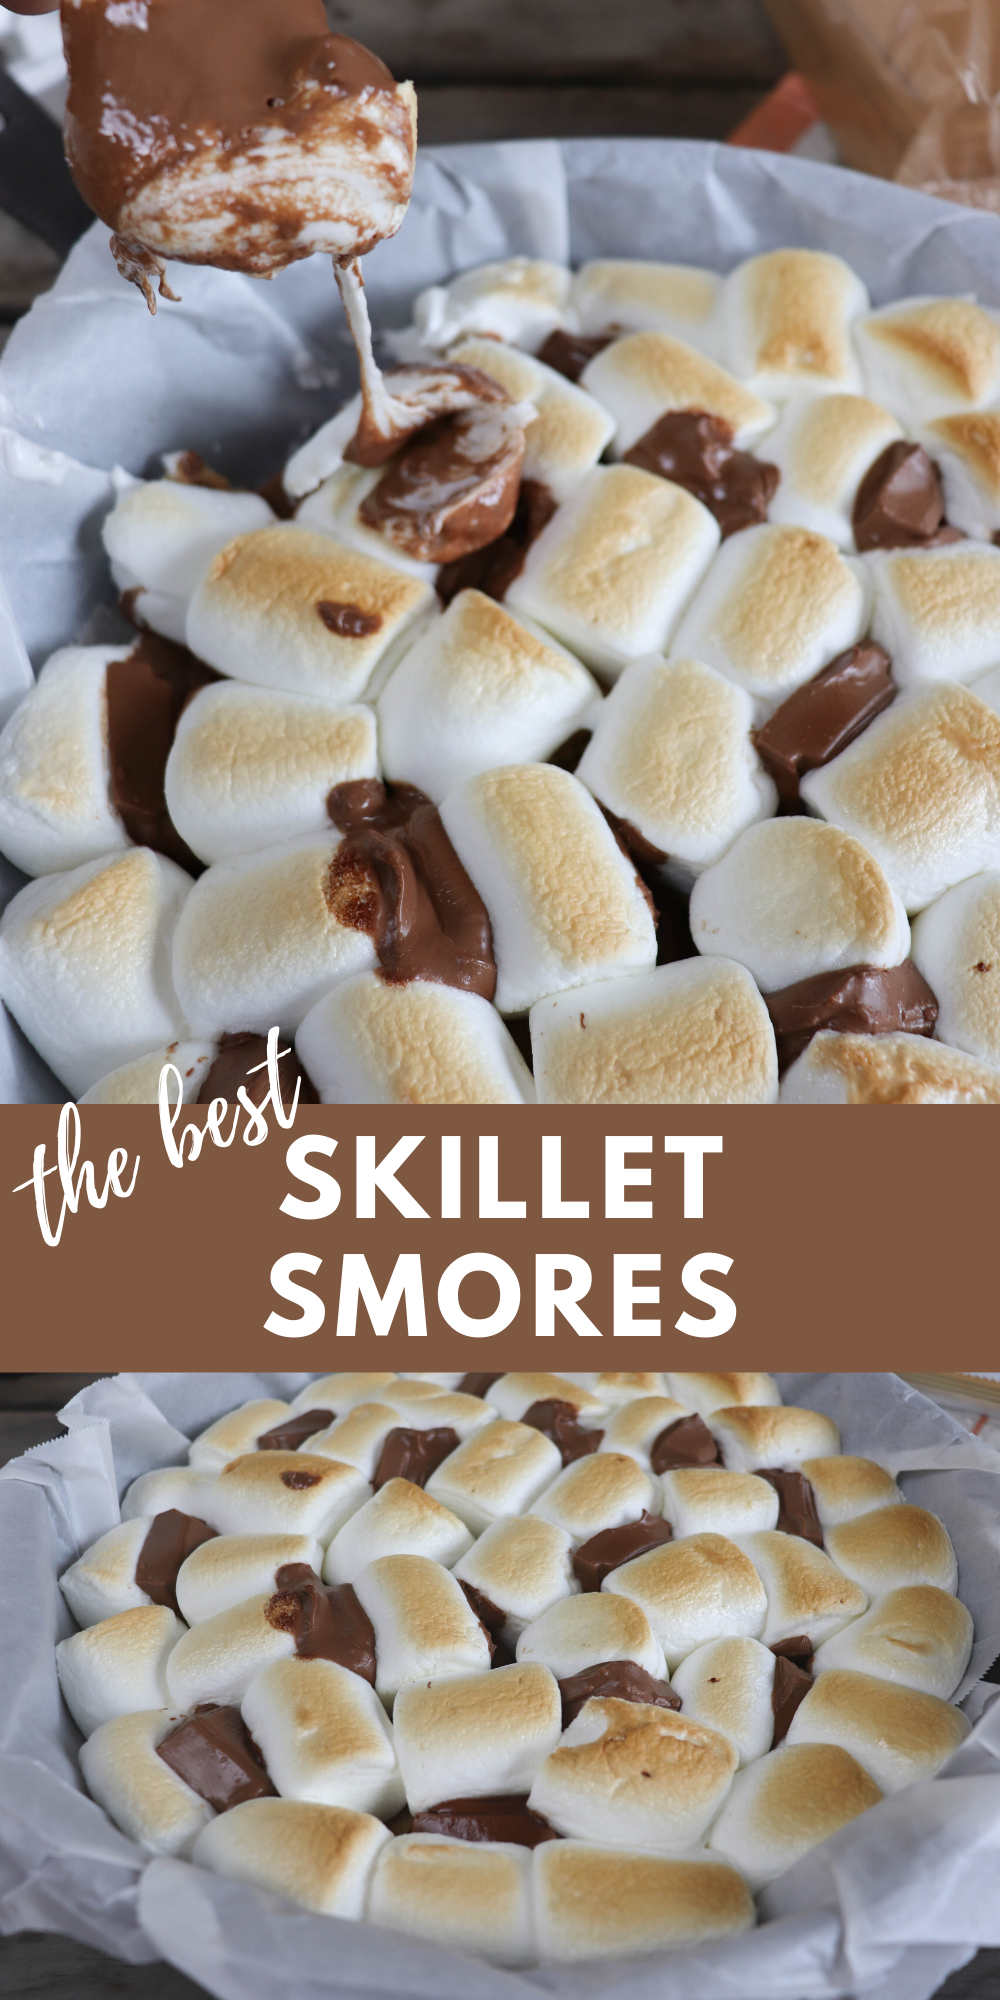 Have you tried the best skillet smores yet?! This smores recipe is absolutely delicious, easy to make and feeds a crowd!